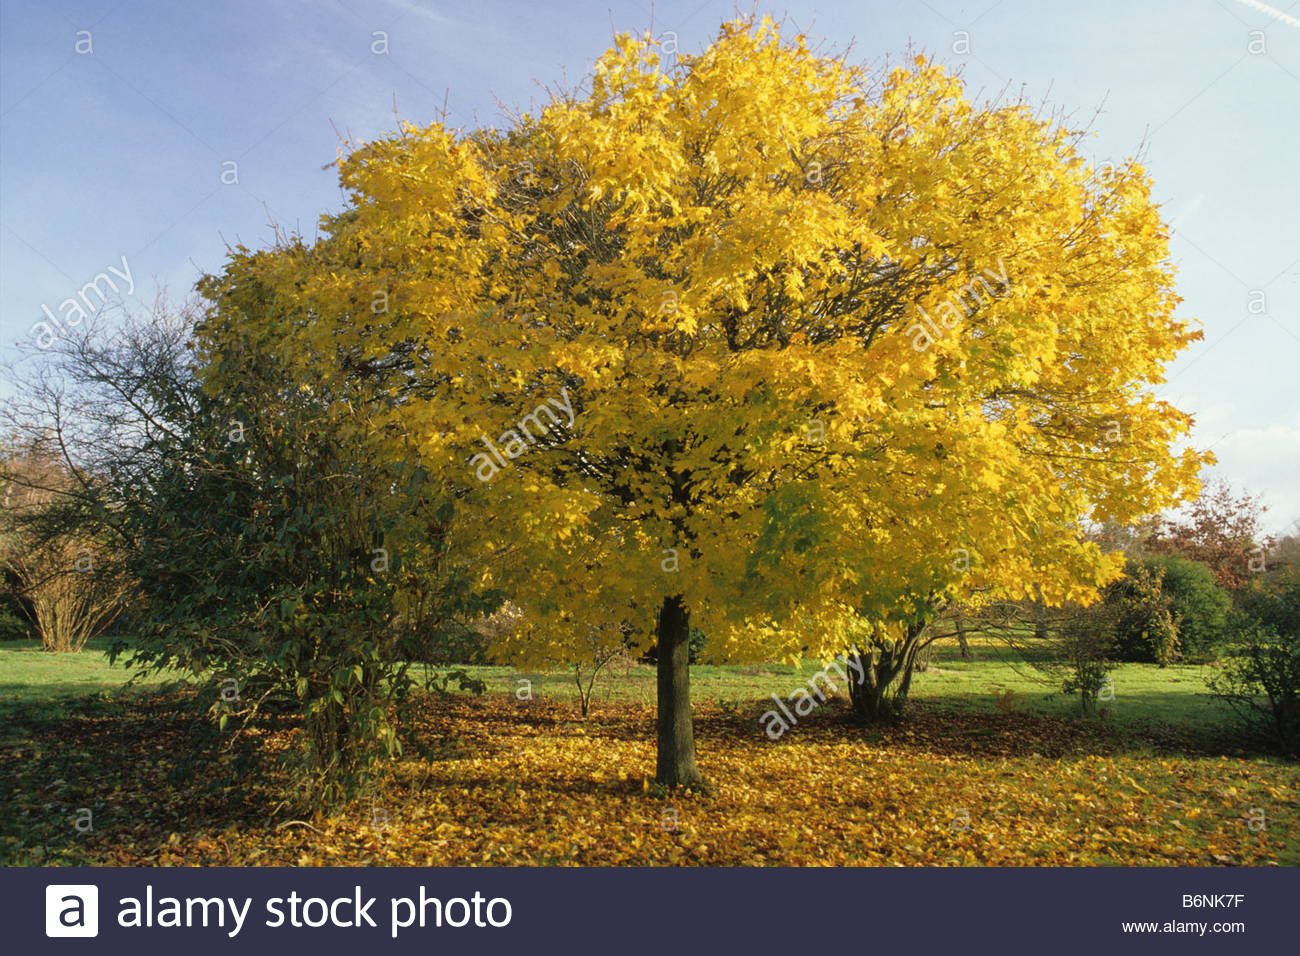 hilliers arboretum hampshire maple acer platanoides globosum in stock photo royalty free image. Black Bedroom Furniture Sets. Home Design Ideas